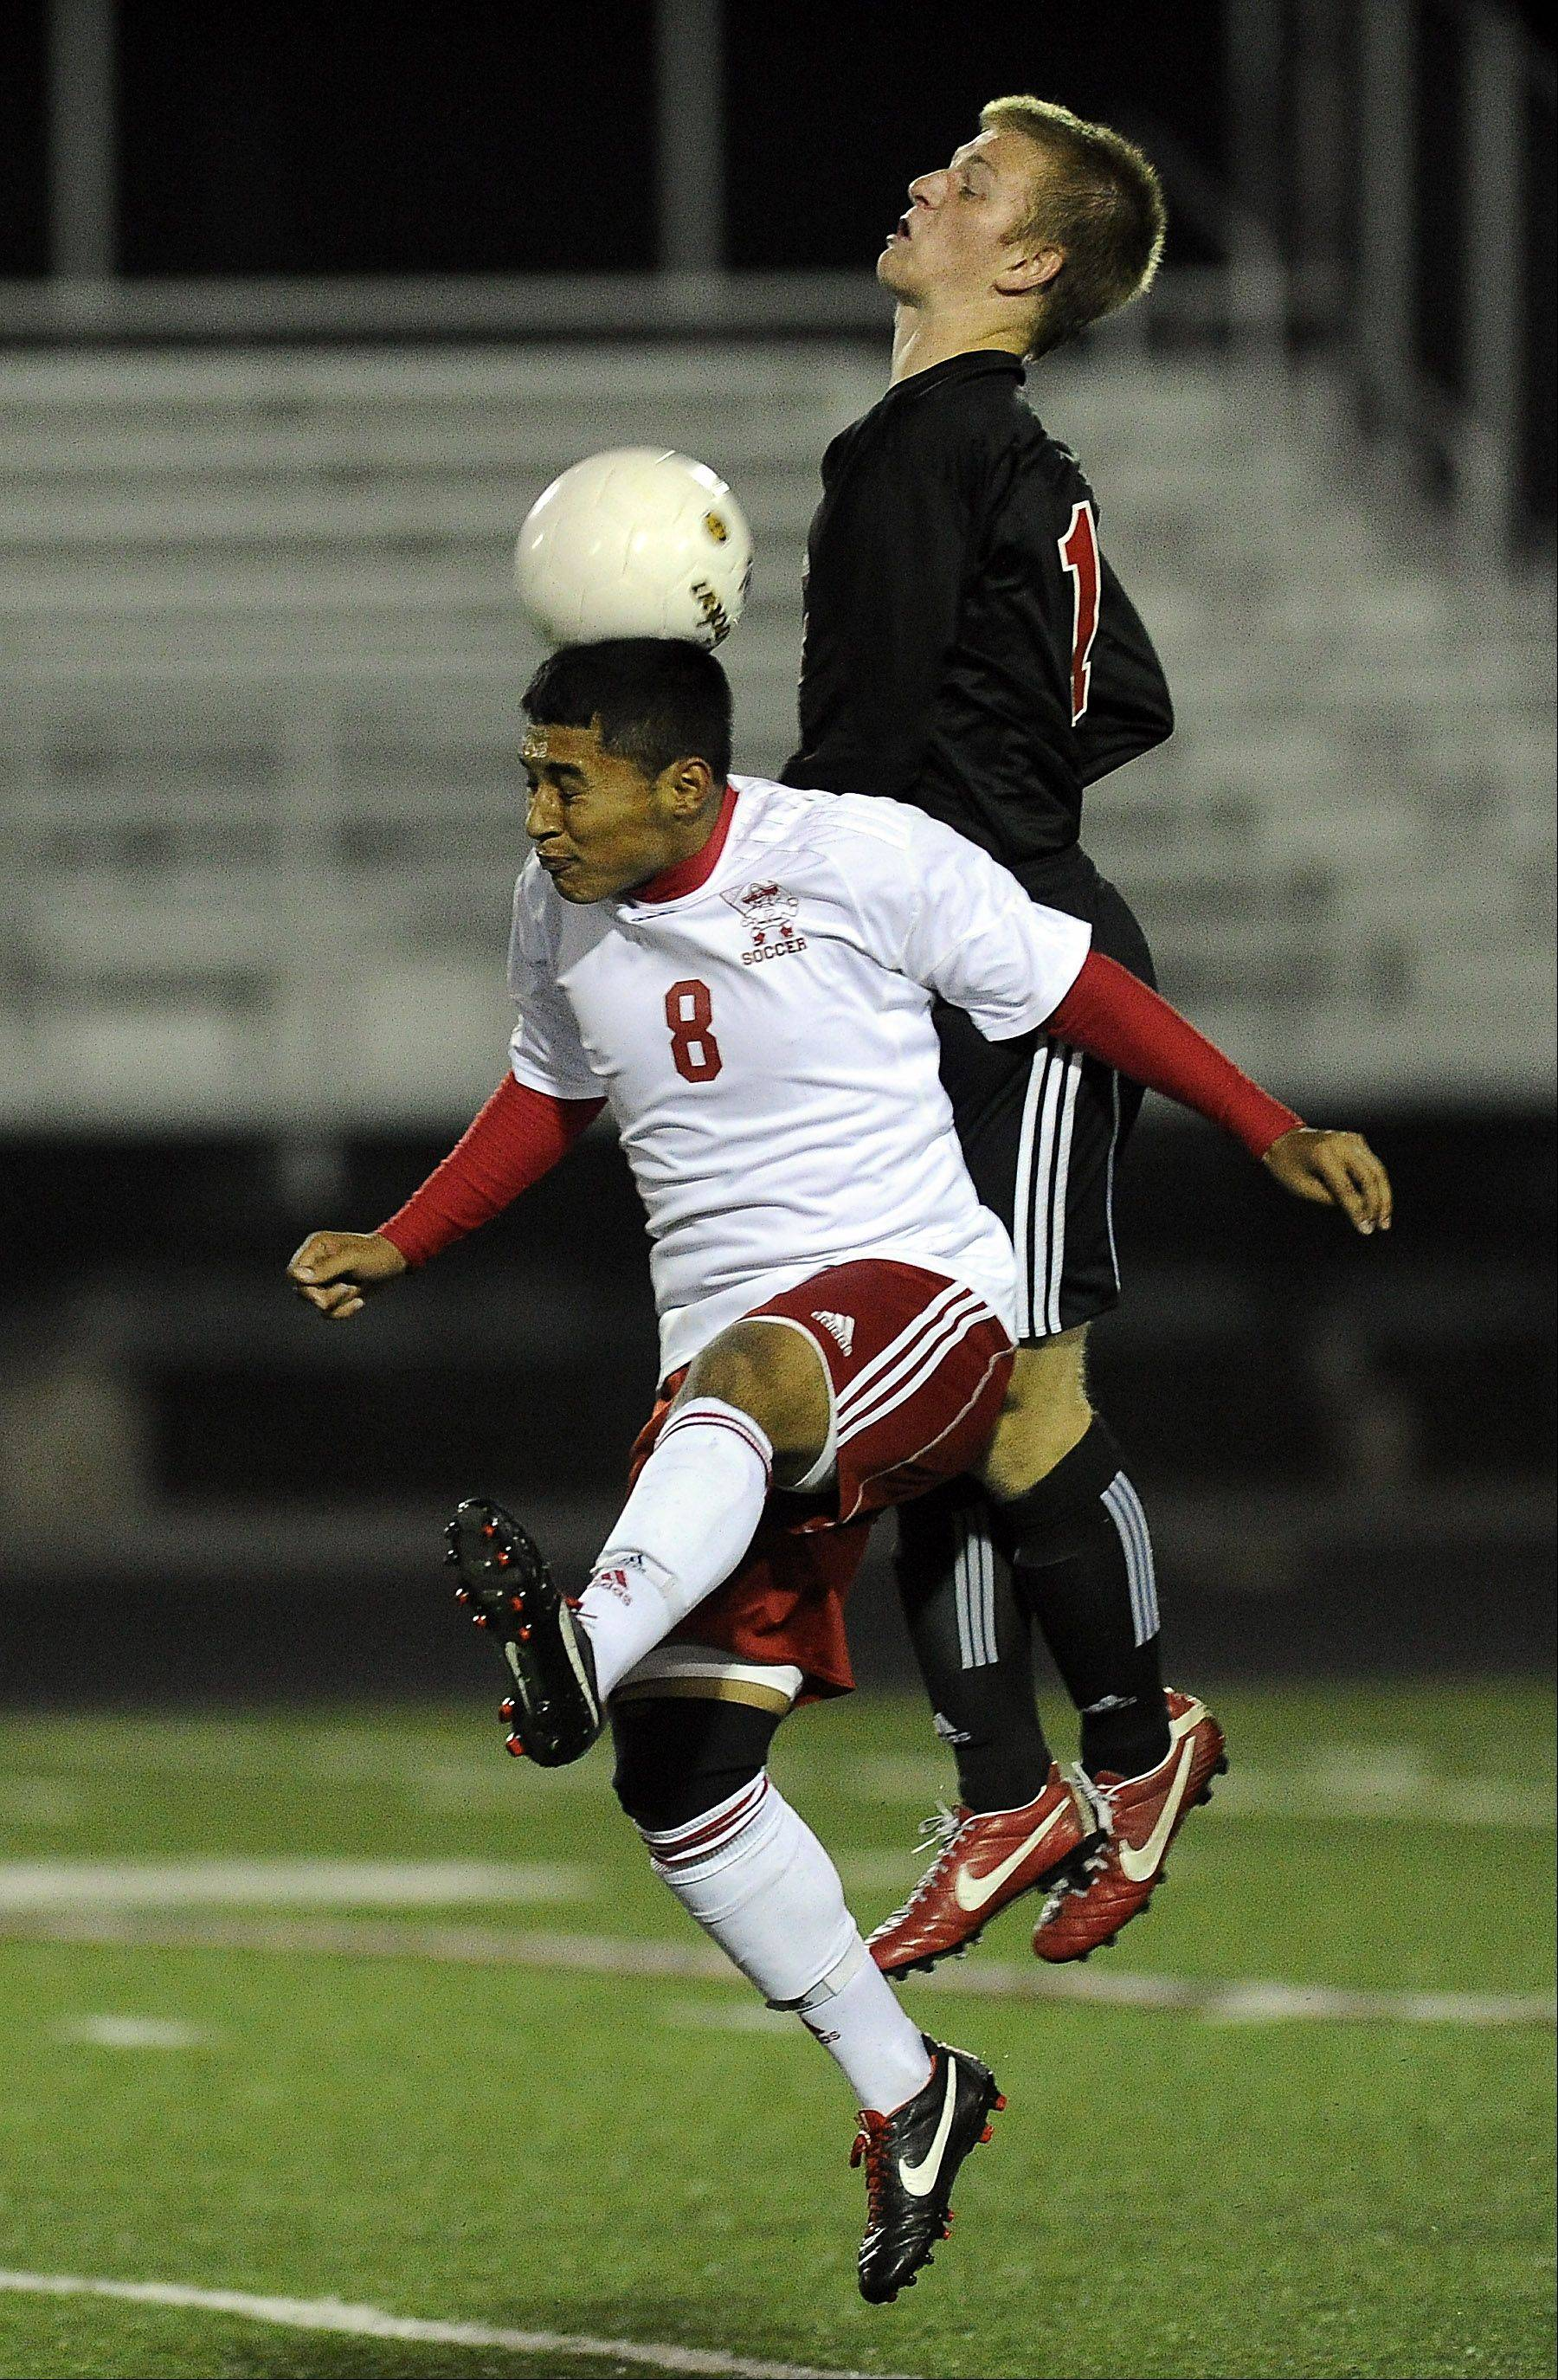 Palatine's Cesar Valdez tries to get control of the ball with a header while Barrington's Dylan Nelson applies pressure Thursday at Palatine.